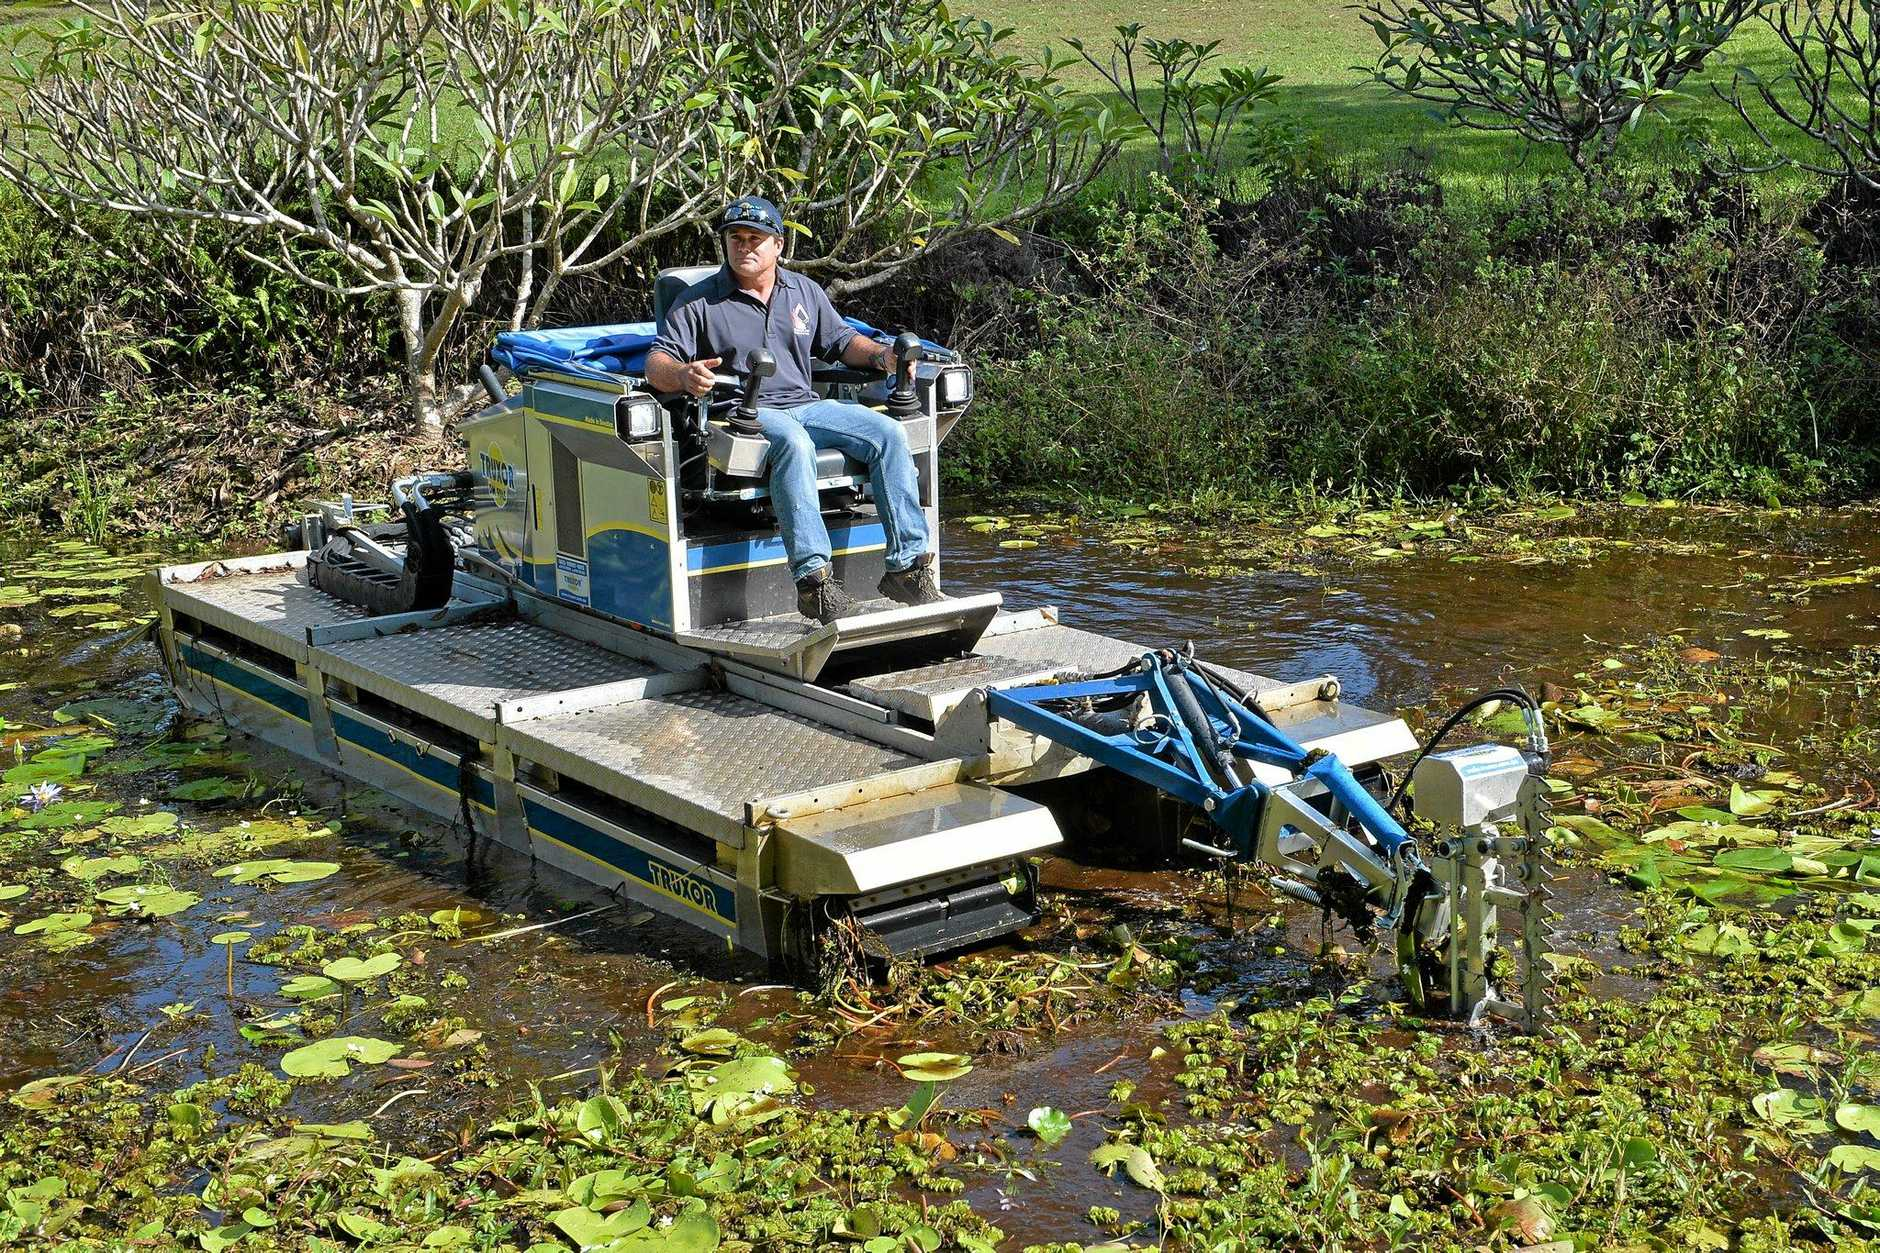 Adam Farr, of Palmwoods-based Farr Environmental Services, with his new Truxor 5045 in action